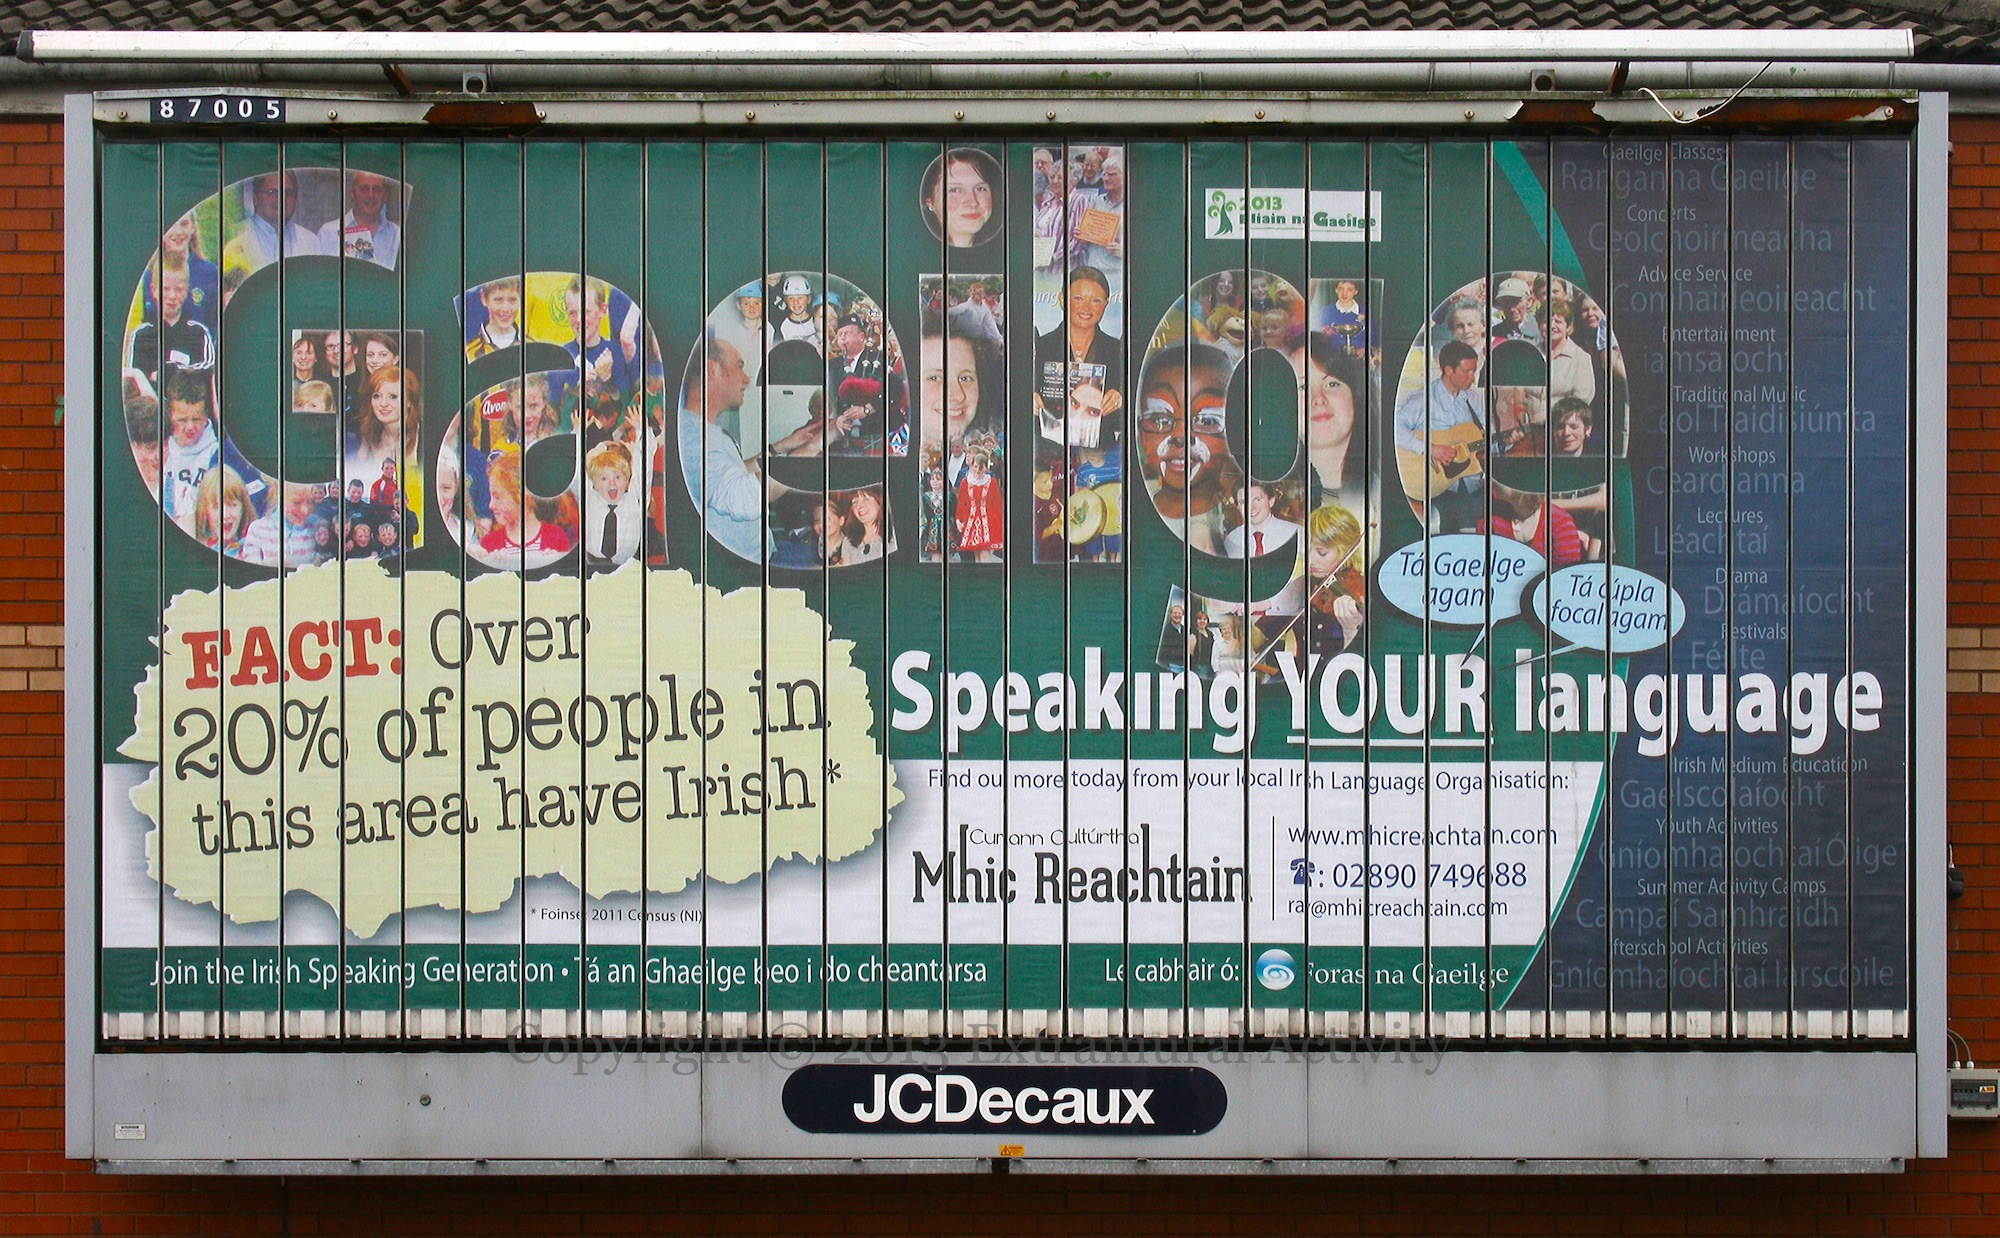 Speaking your language extramural activity for Extra mural activity